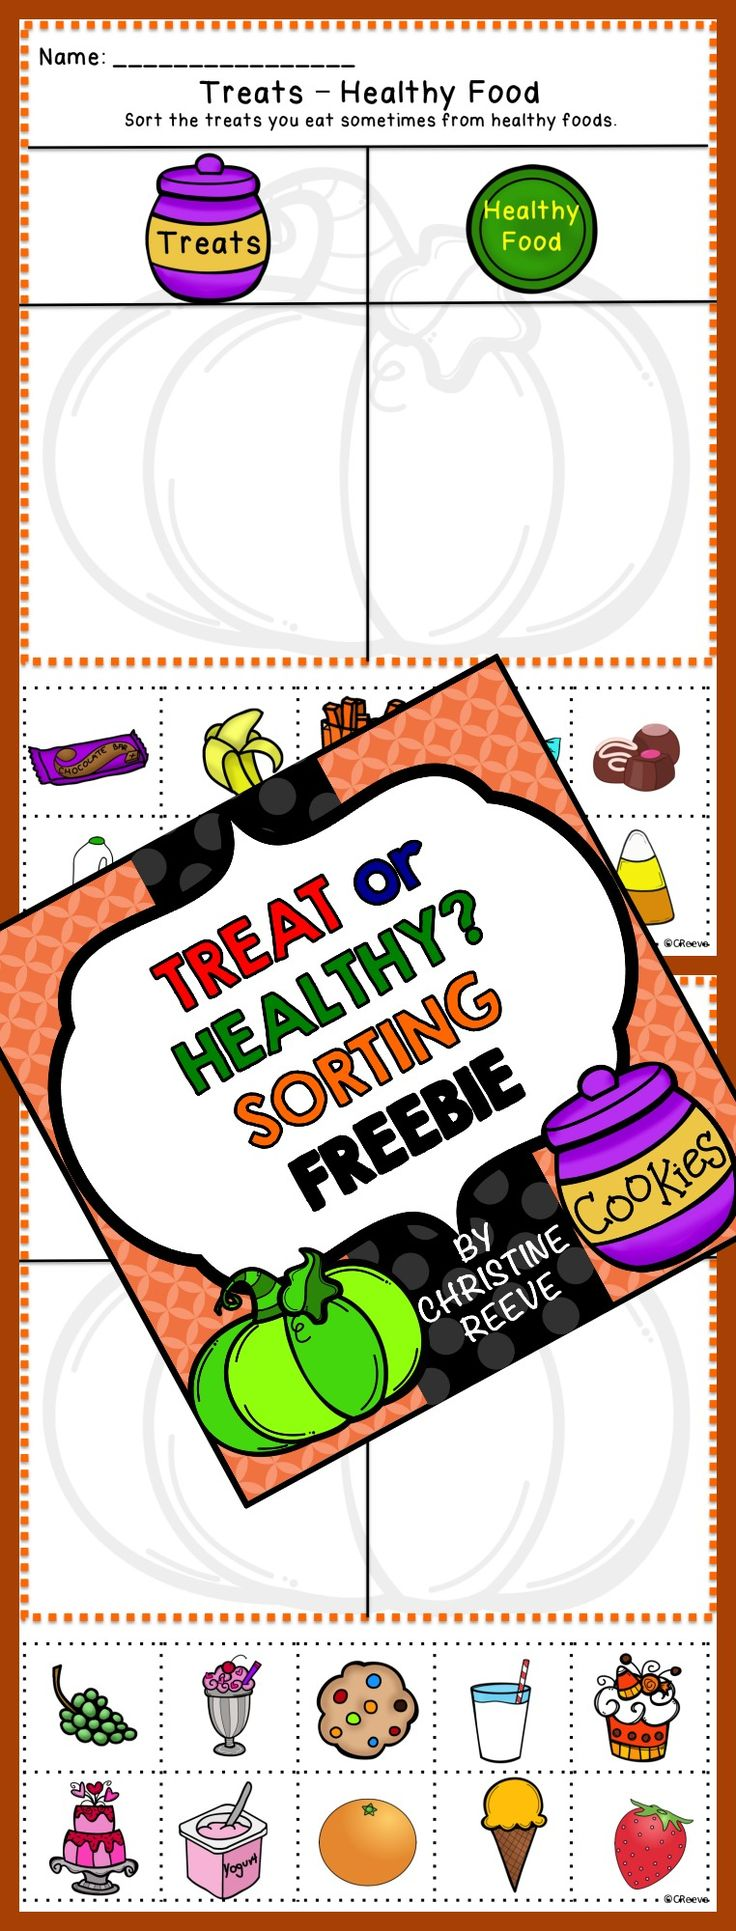 This FREE sorting activity for healthy/ not healthy foods.  Perfect for Halloween, even if you can't use Halloween activities (no bats, ghosts or witches included).  2 cut-and-paste worksheets --or laminate them to file folders. Great for life skills classes.